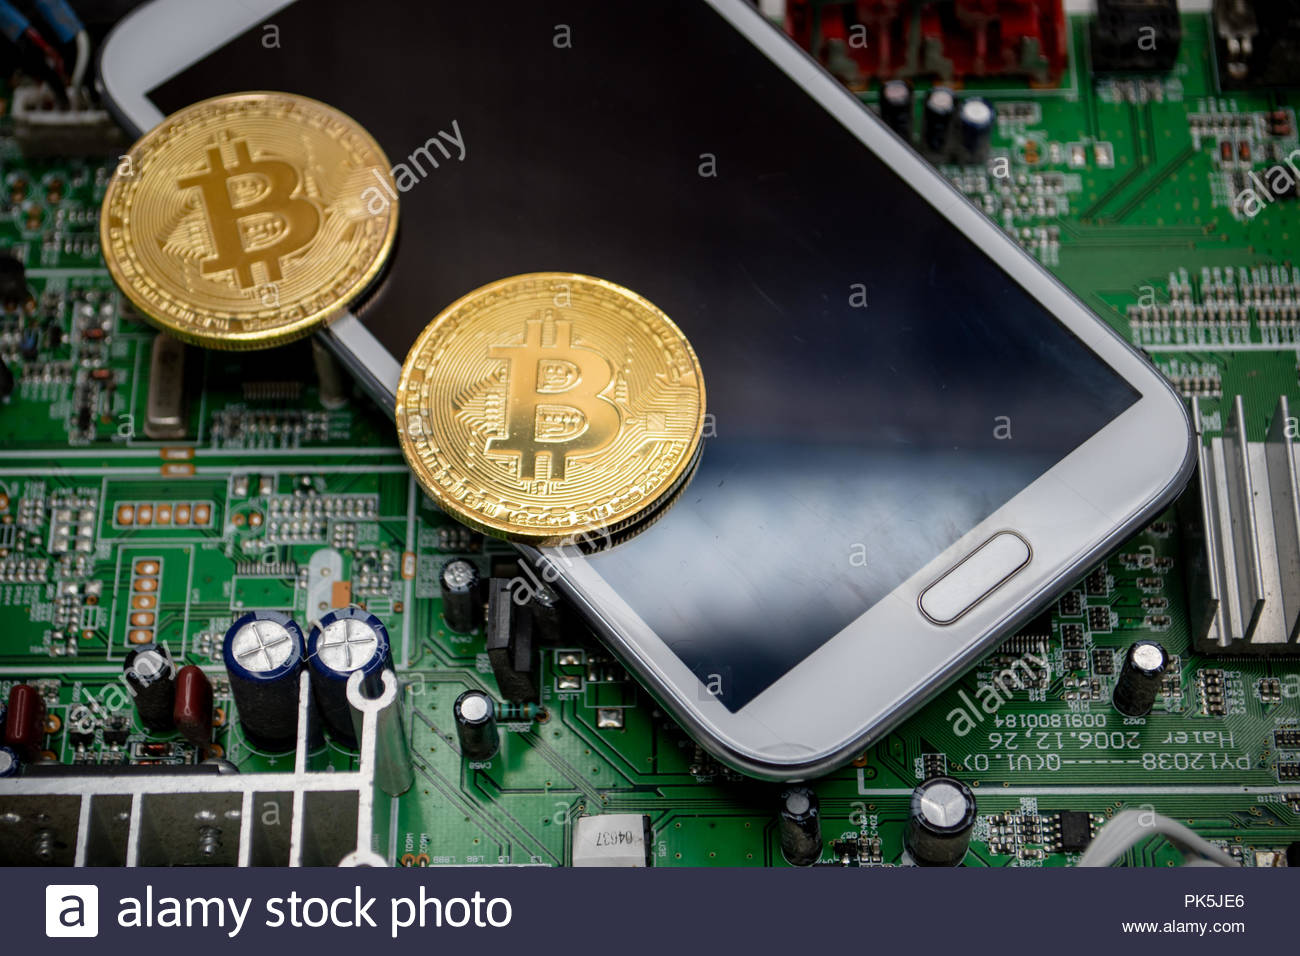 Winnipeg Mb Canada September 8 2018 Physical Bitcoin Are Cell Phone Circuit Board Depicted With A On In This Illustrative Editorial